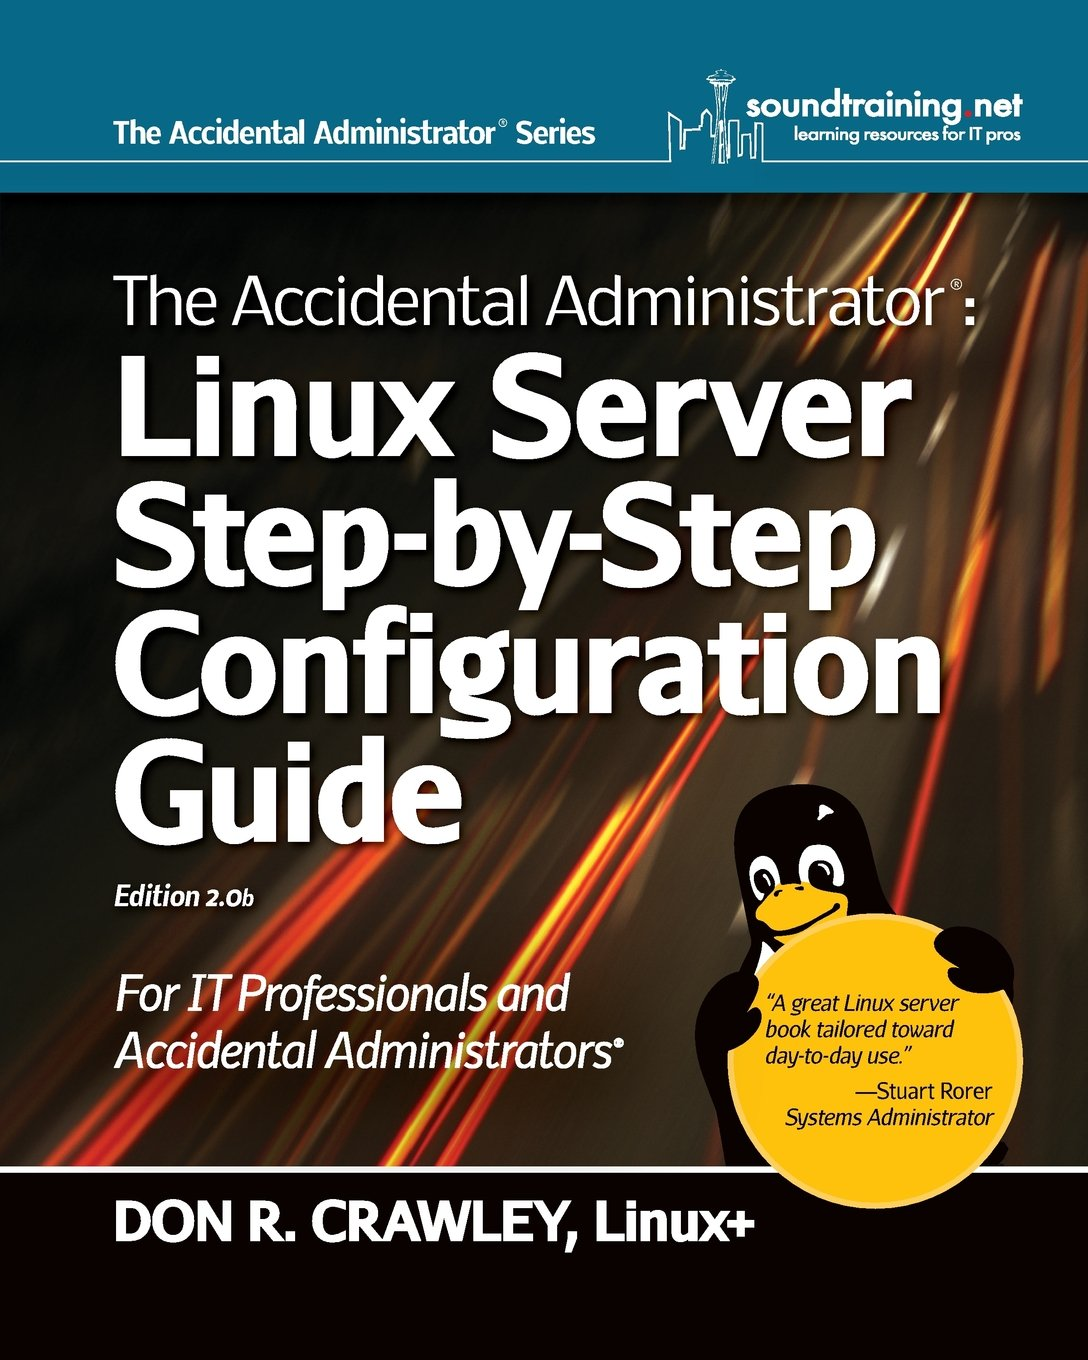 Administrator - The accidental administrator linux server step by step configuration guide don r crawley 9781453689929 amazon com books